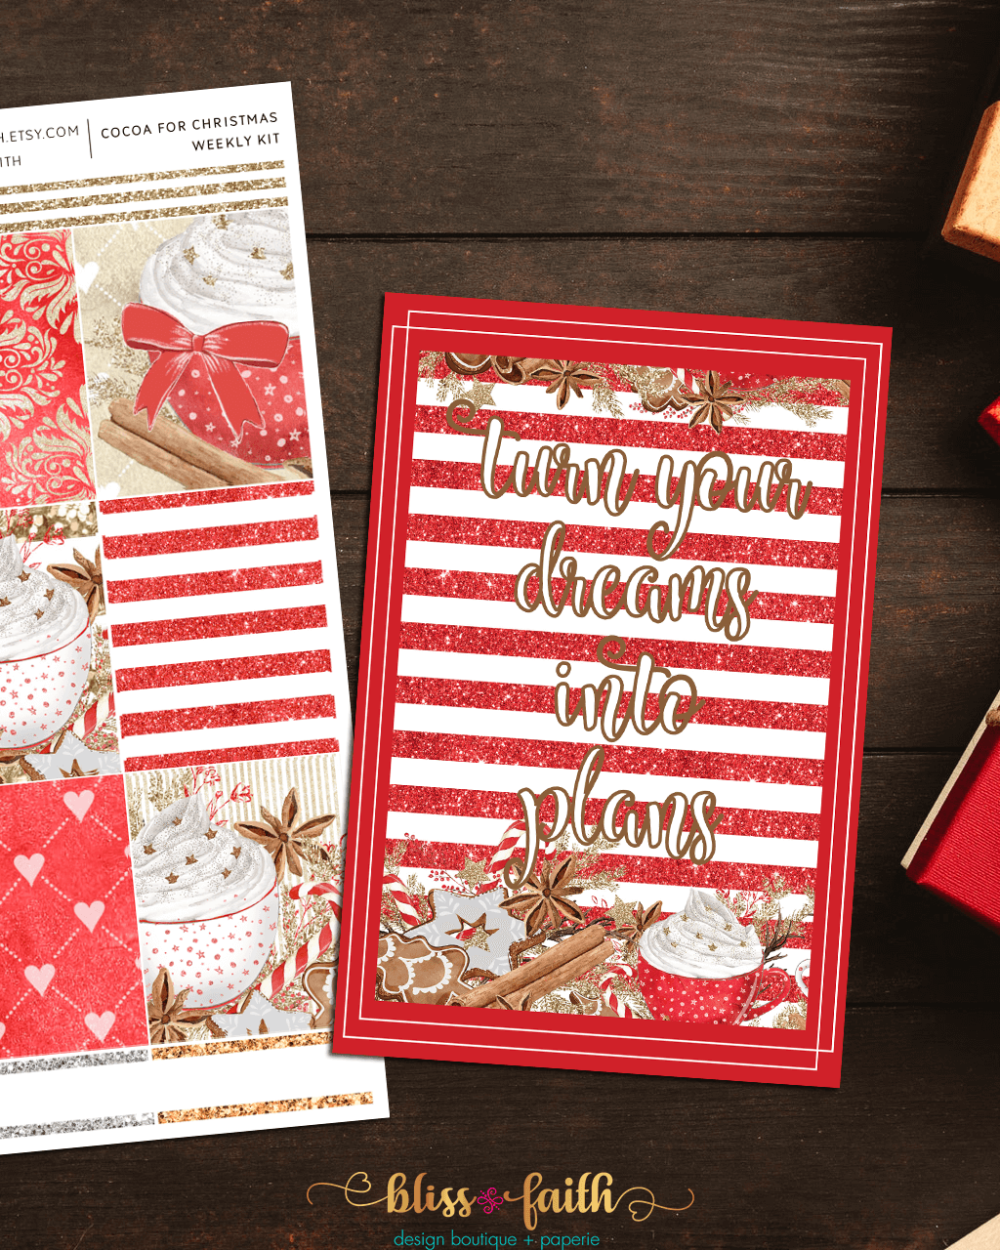 Cocoa for Christmas Weekly Sticker Kit | shop.blissandfaith.com